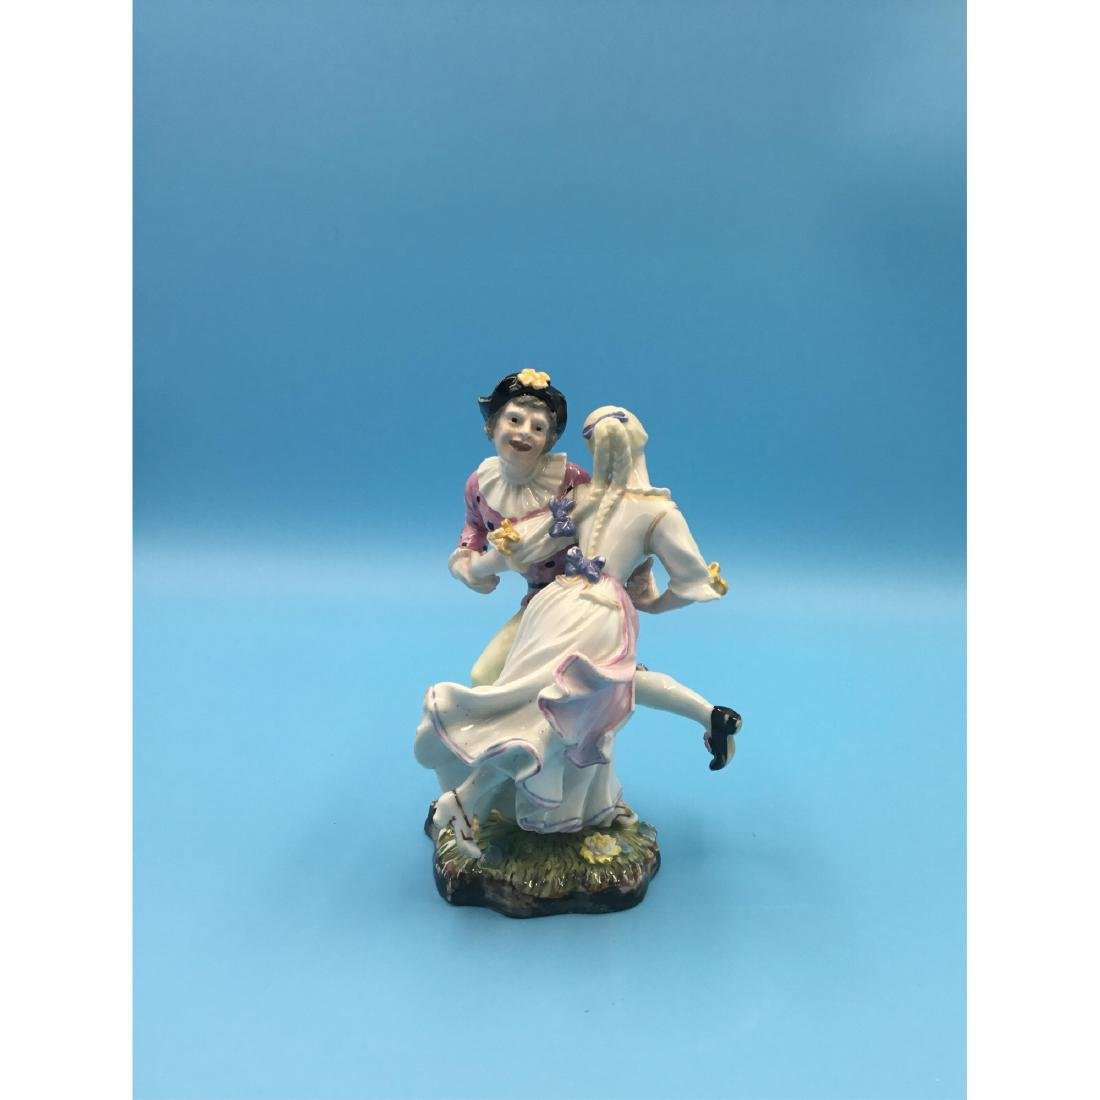 HOCHST 18TH C GERMAN PORCELAIN GROUP FIGURINE